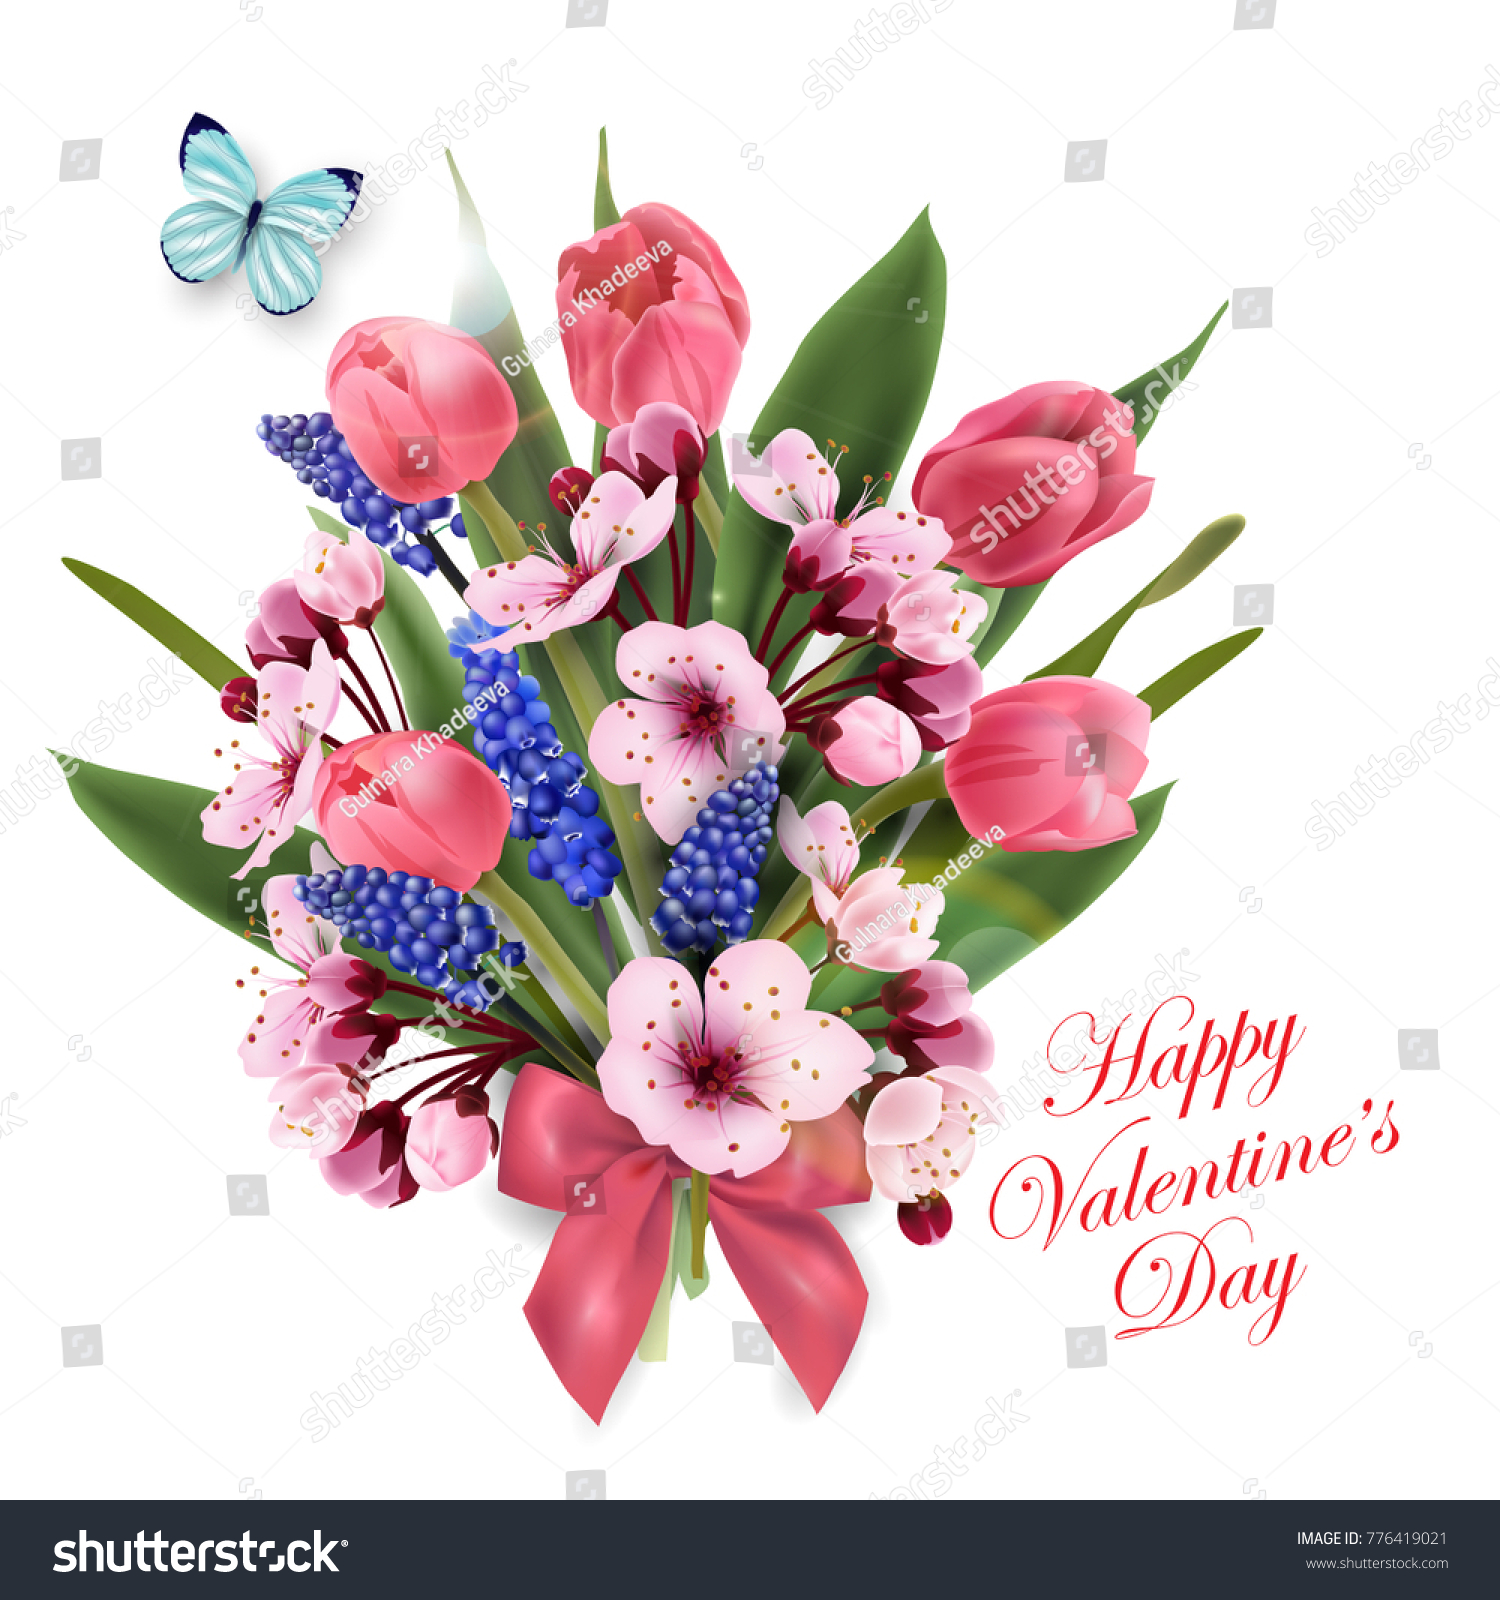 Greeting Card Happy Valentines Day Bouquet Stock Vector (Royalty ...